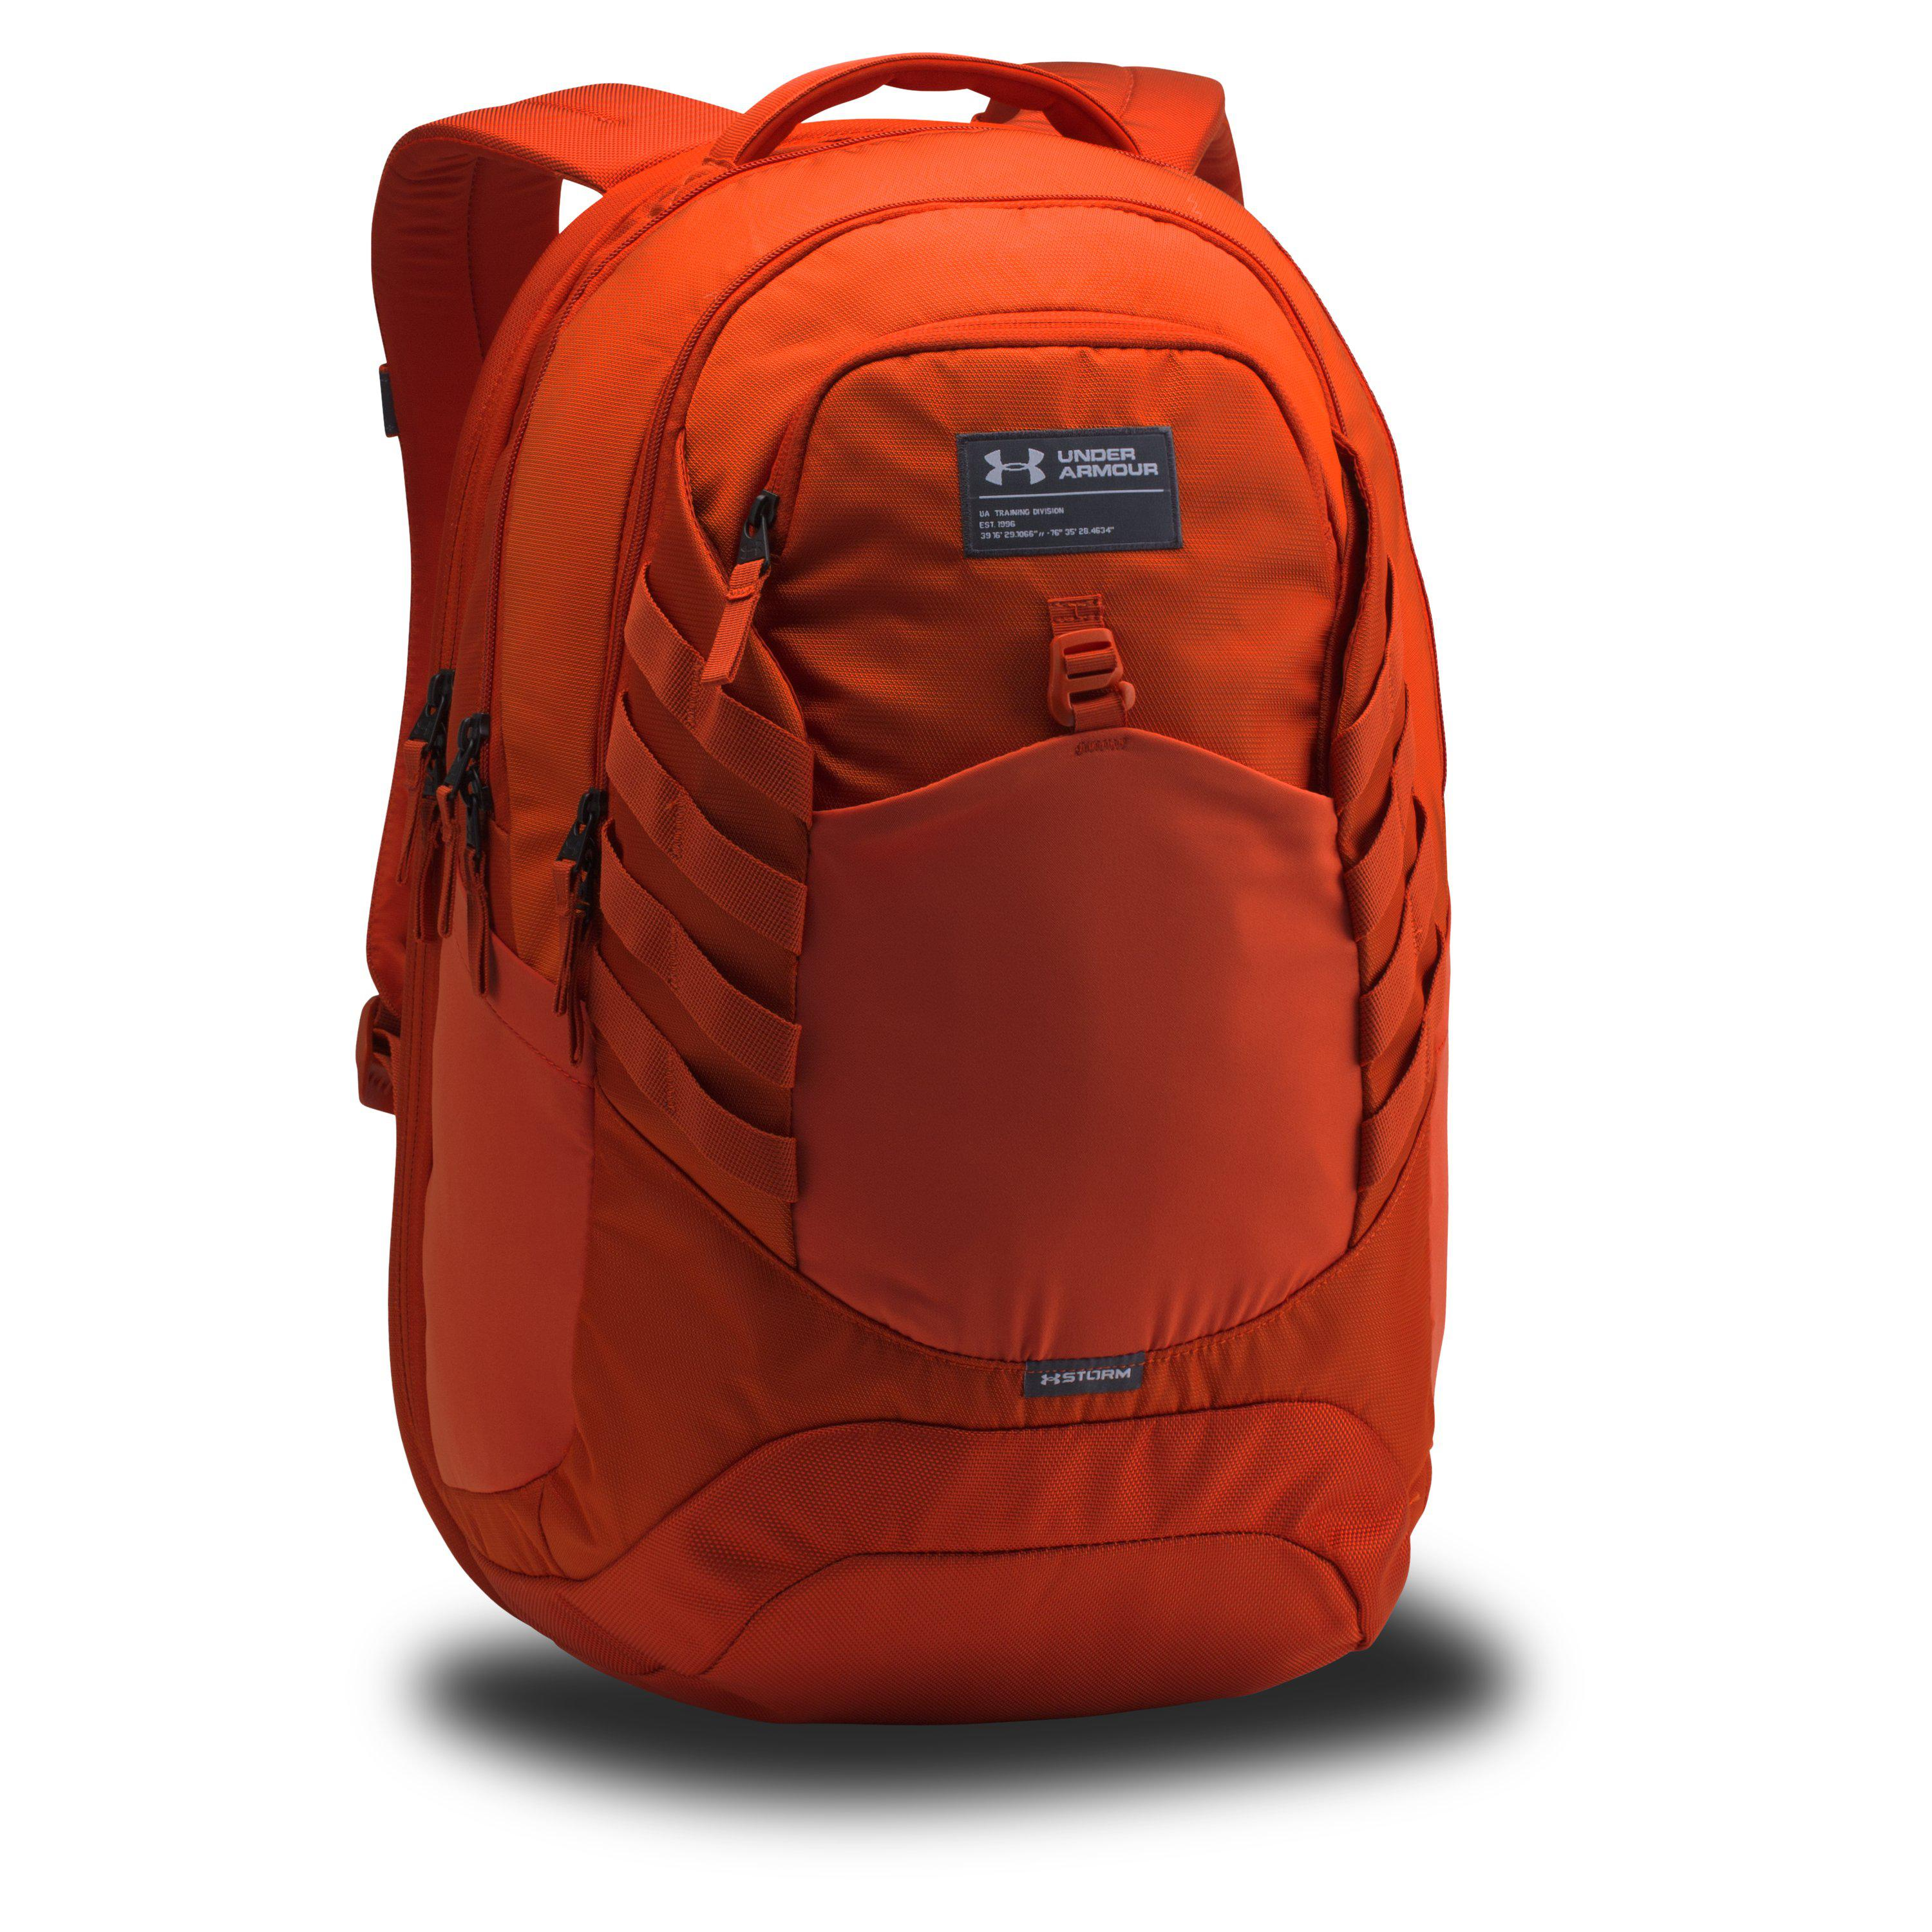 612c5fa95fe7 Lyst - Under Armour Men s Ua Hudson Backpack in Red for Men